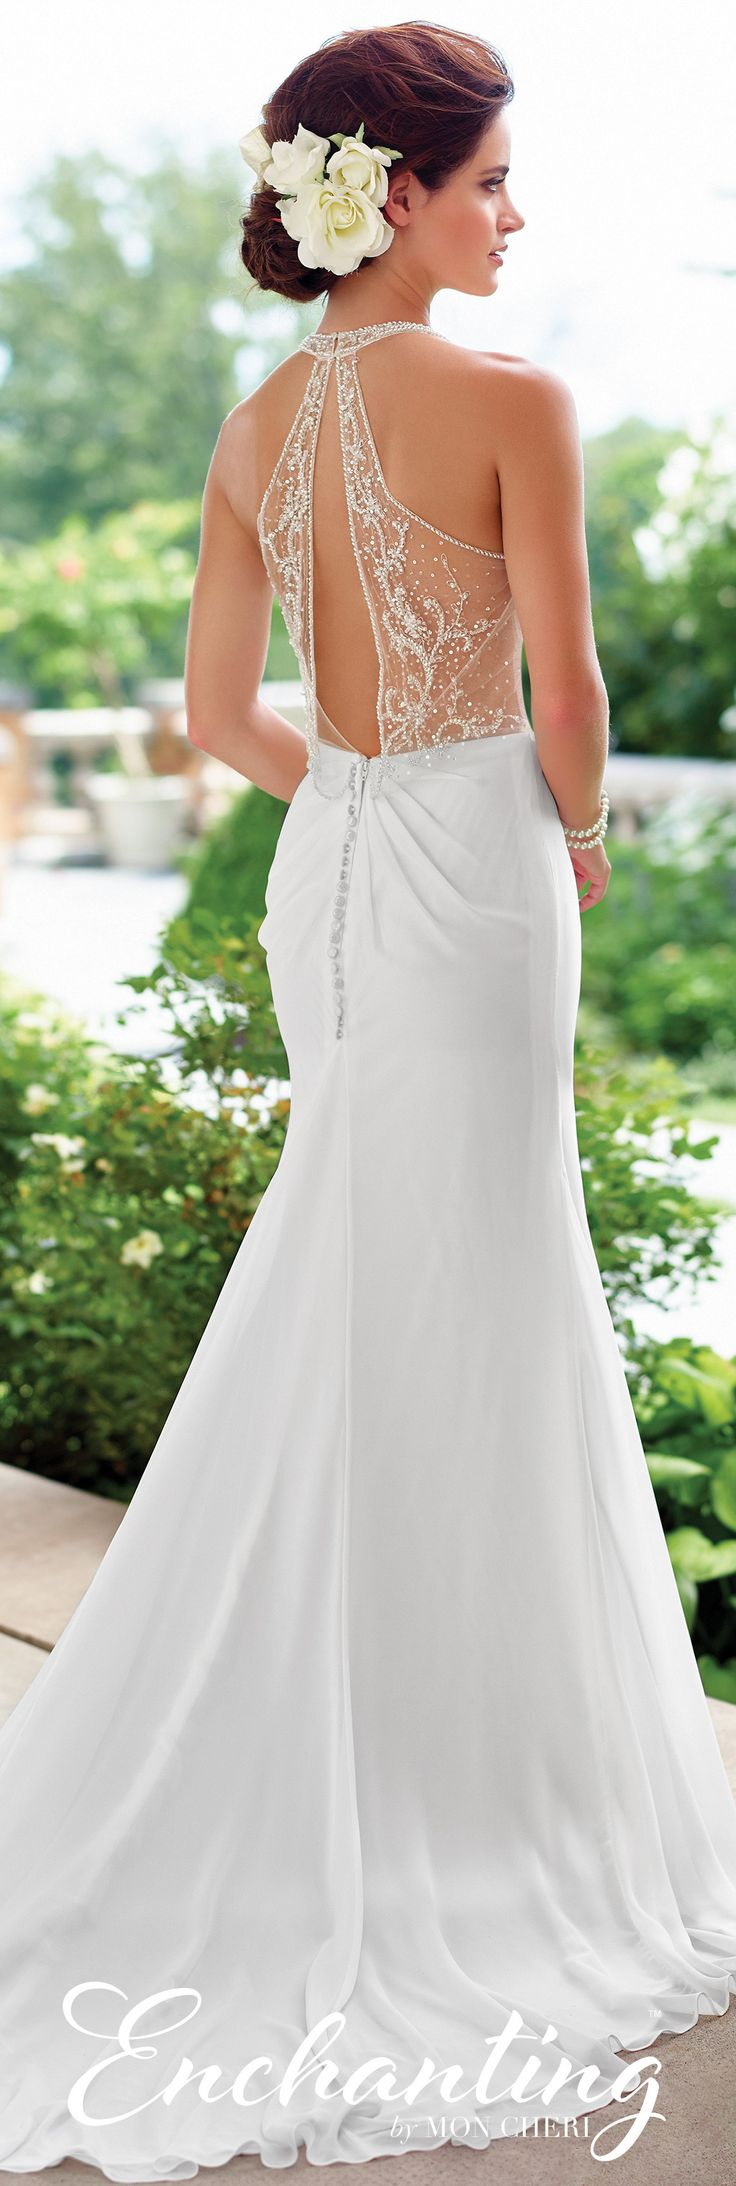 Best 25 chiffon wedding gowns ideas on pinterest for No back wedding dress